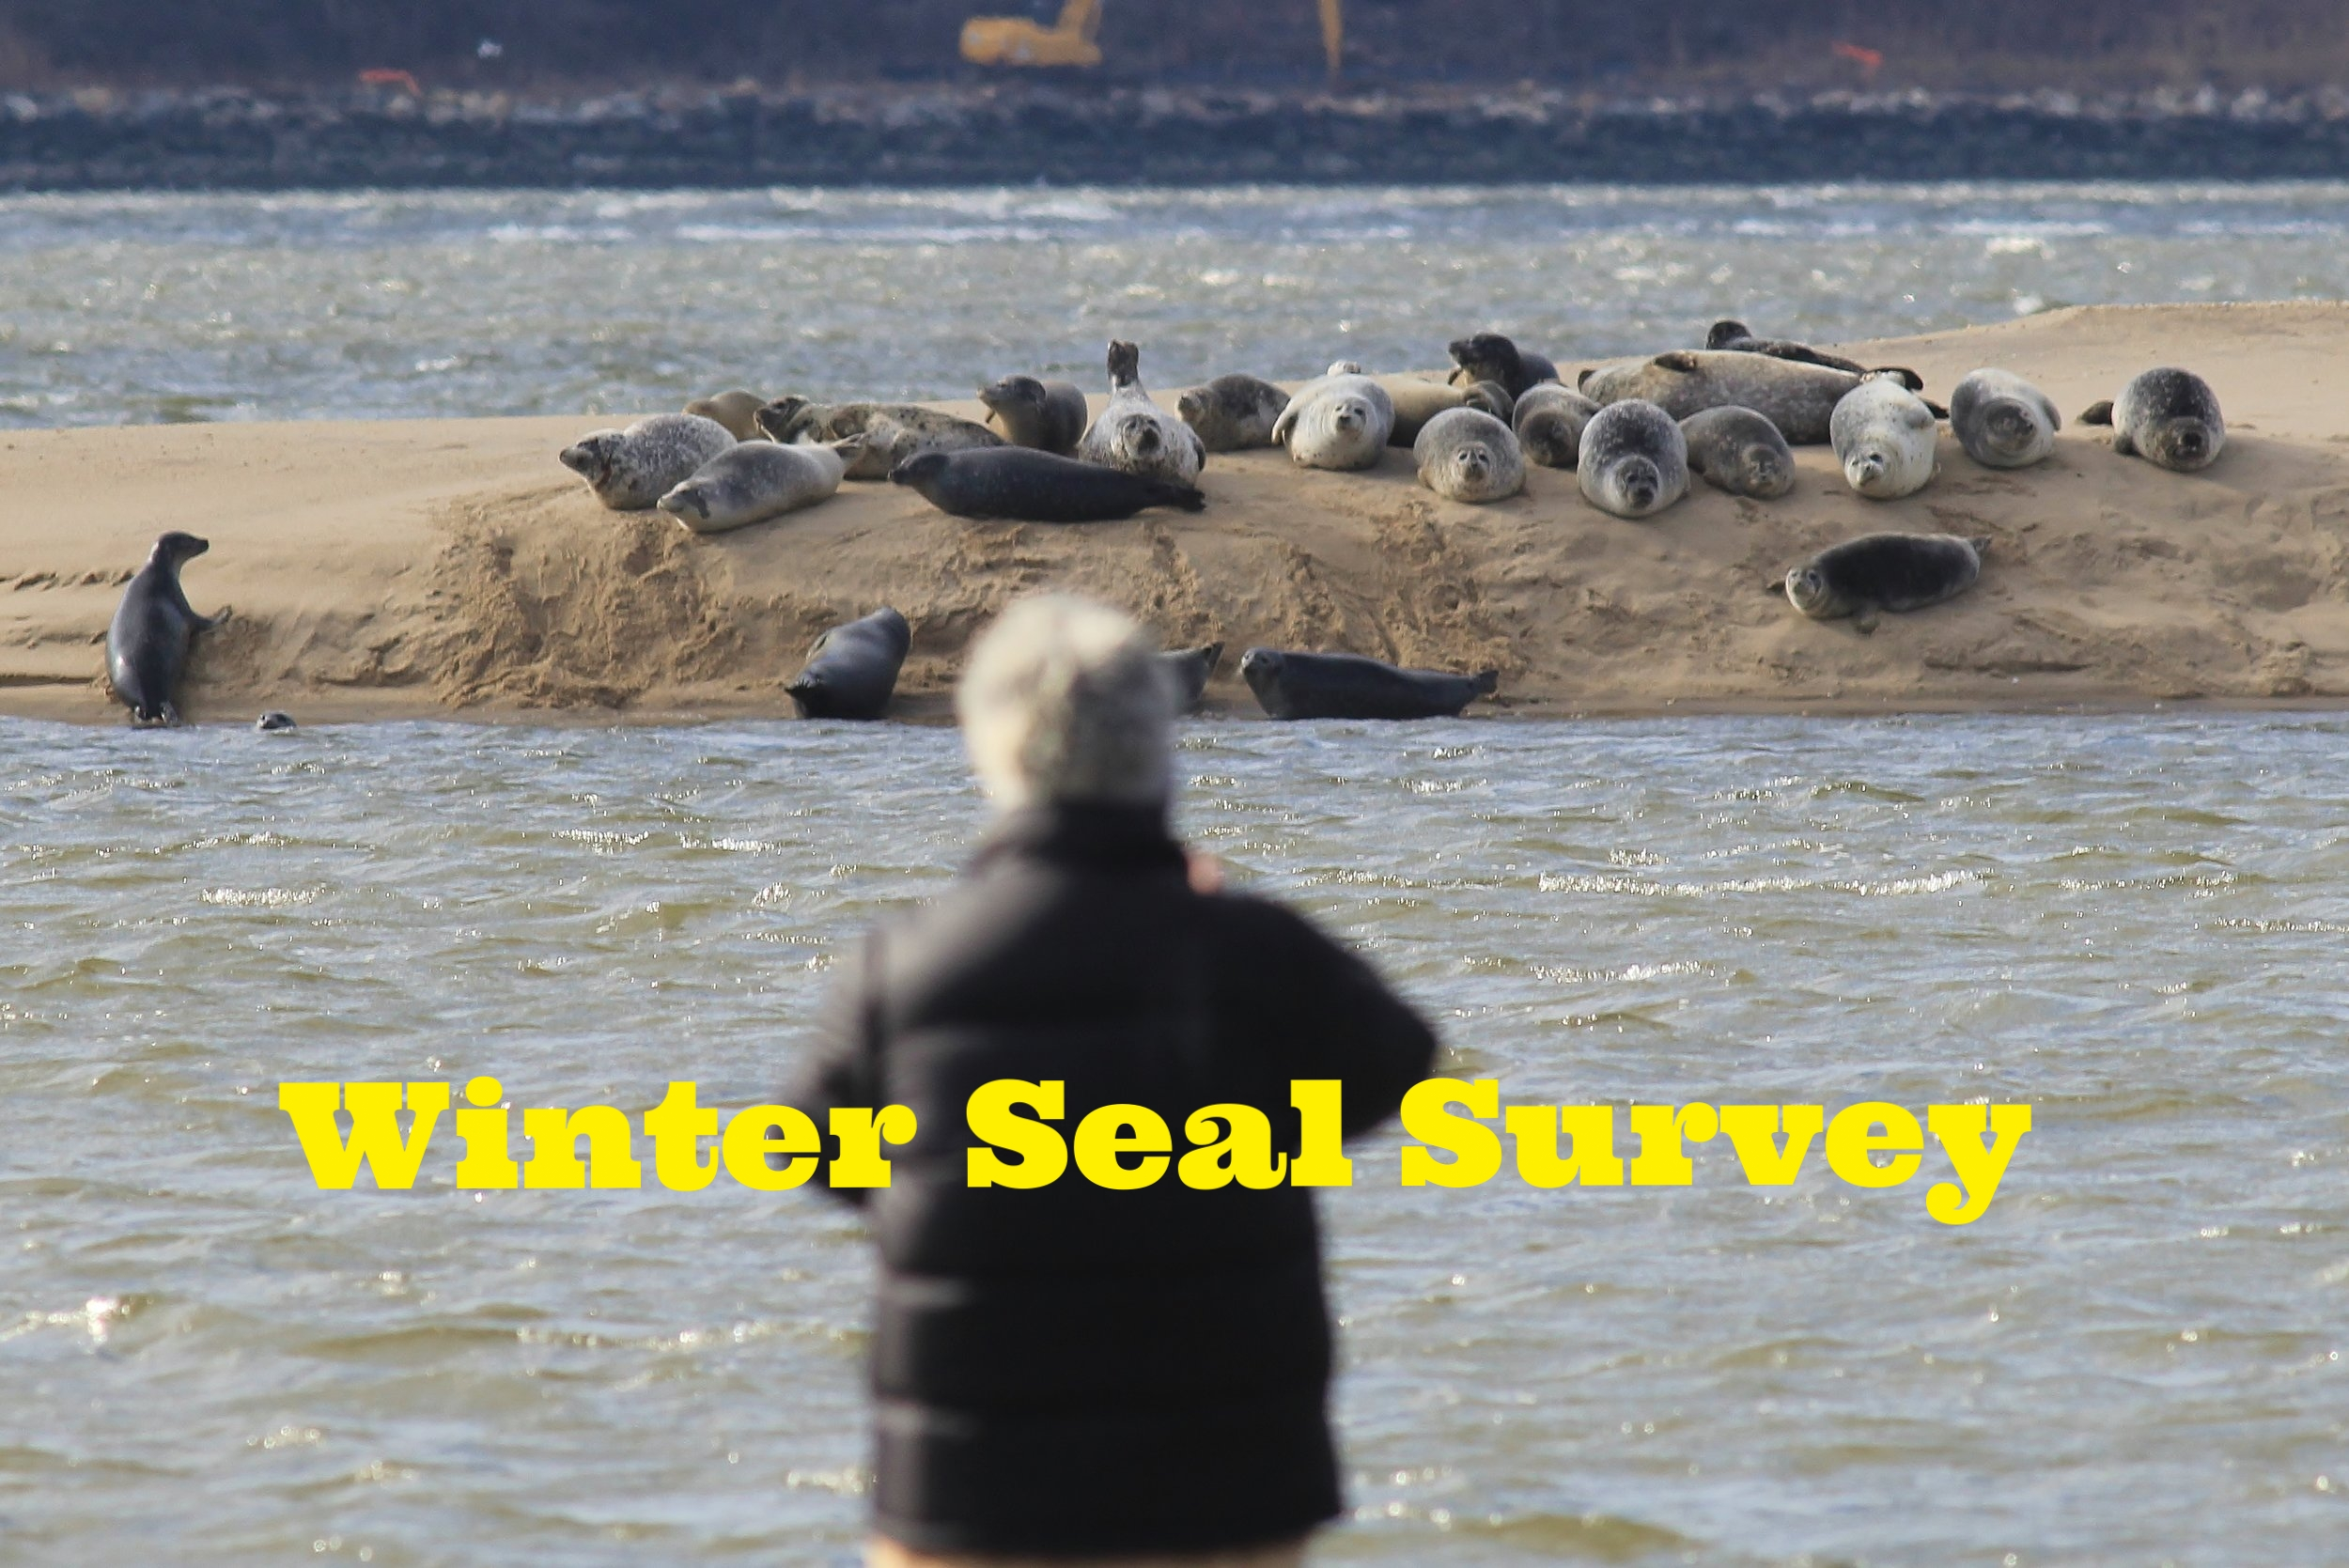 Counting Harbor seals along the coast in New Jersey during the winter.